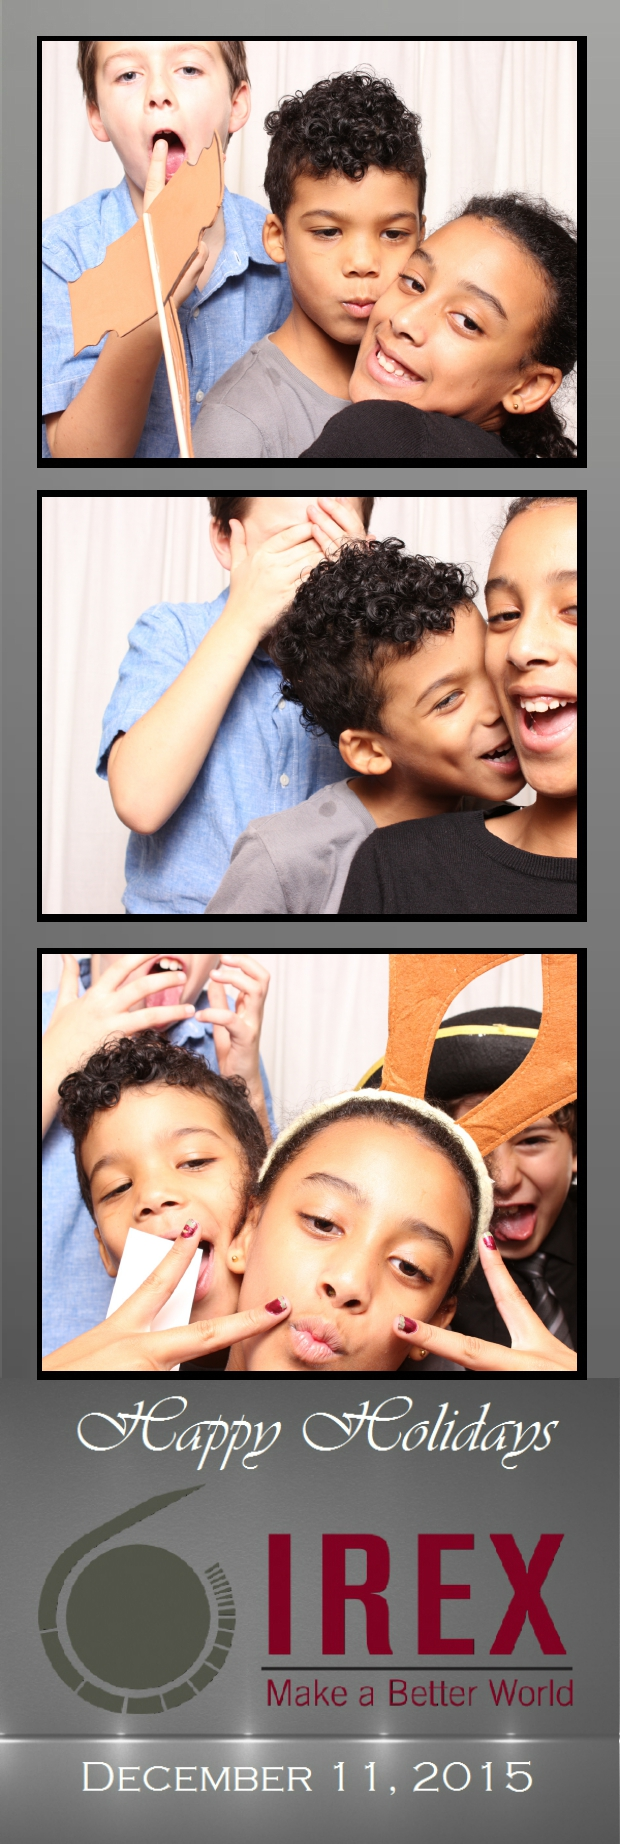 Guest House Events Photo Booth Strips IREX (88).jpg